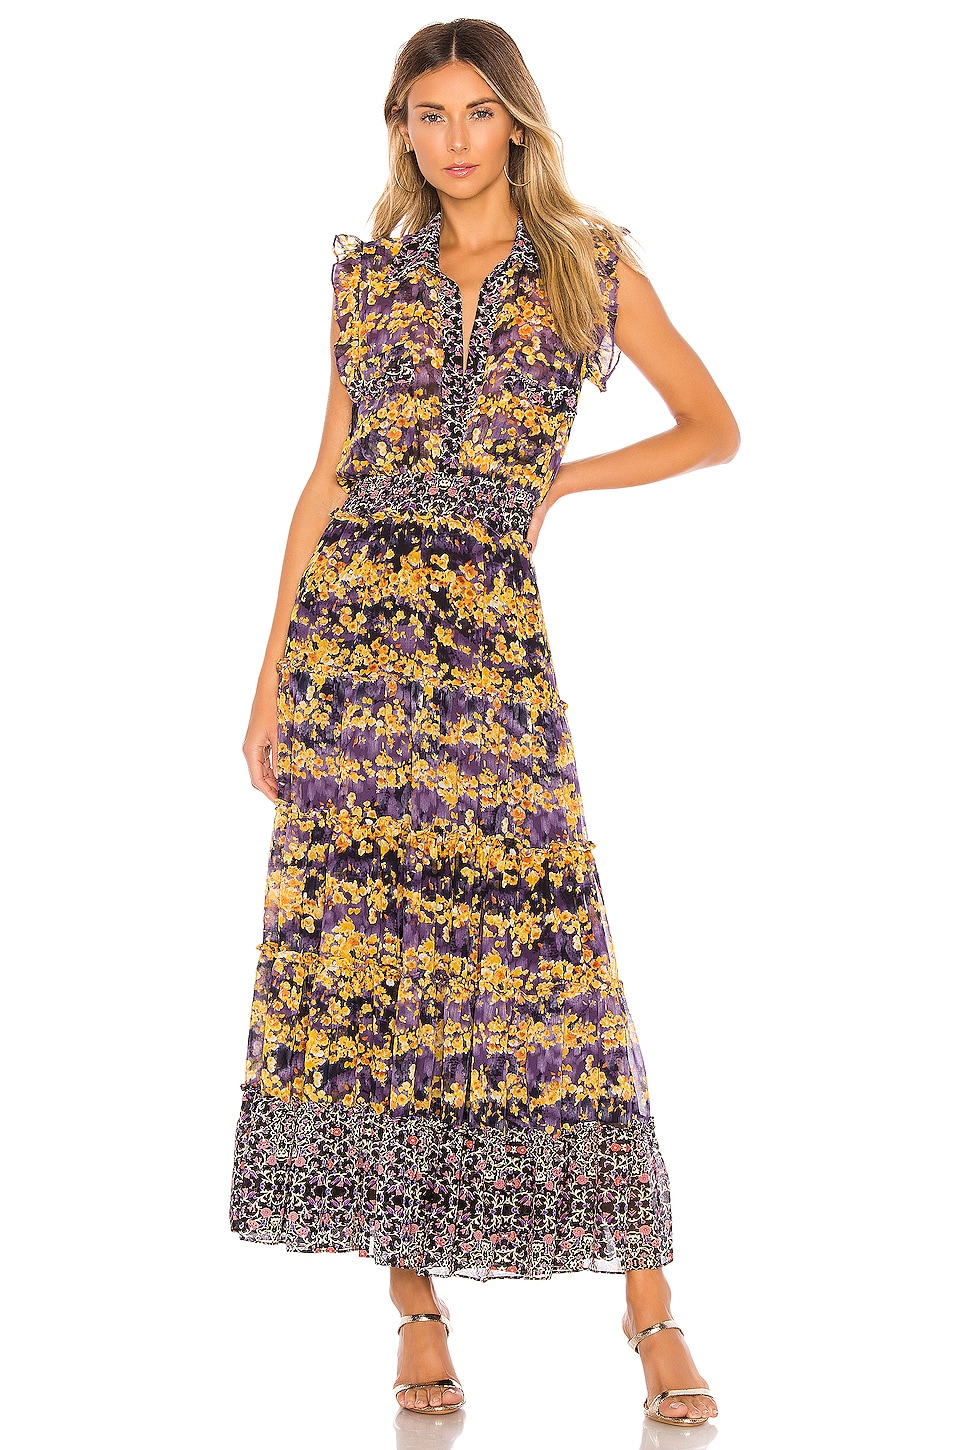 MISA Los Angeles X REVOLVE Trina Dress in Floral Combo